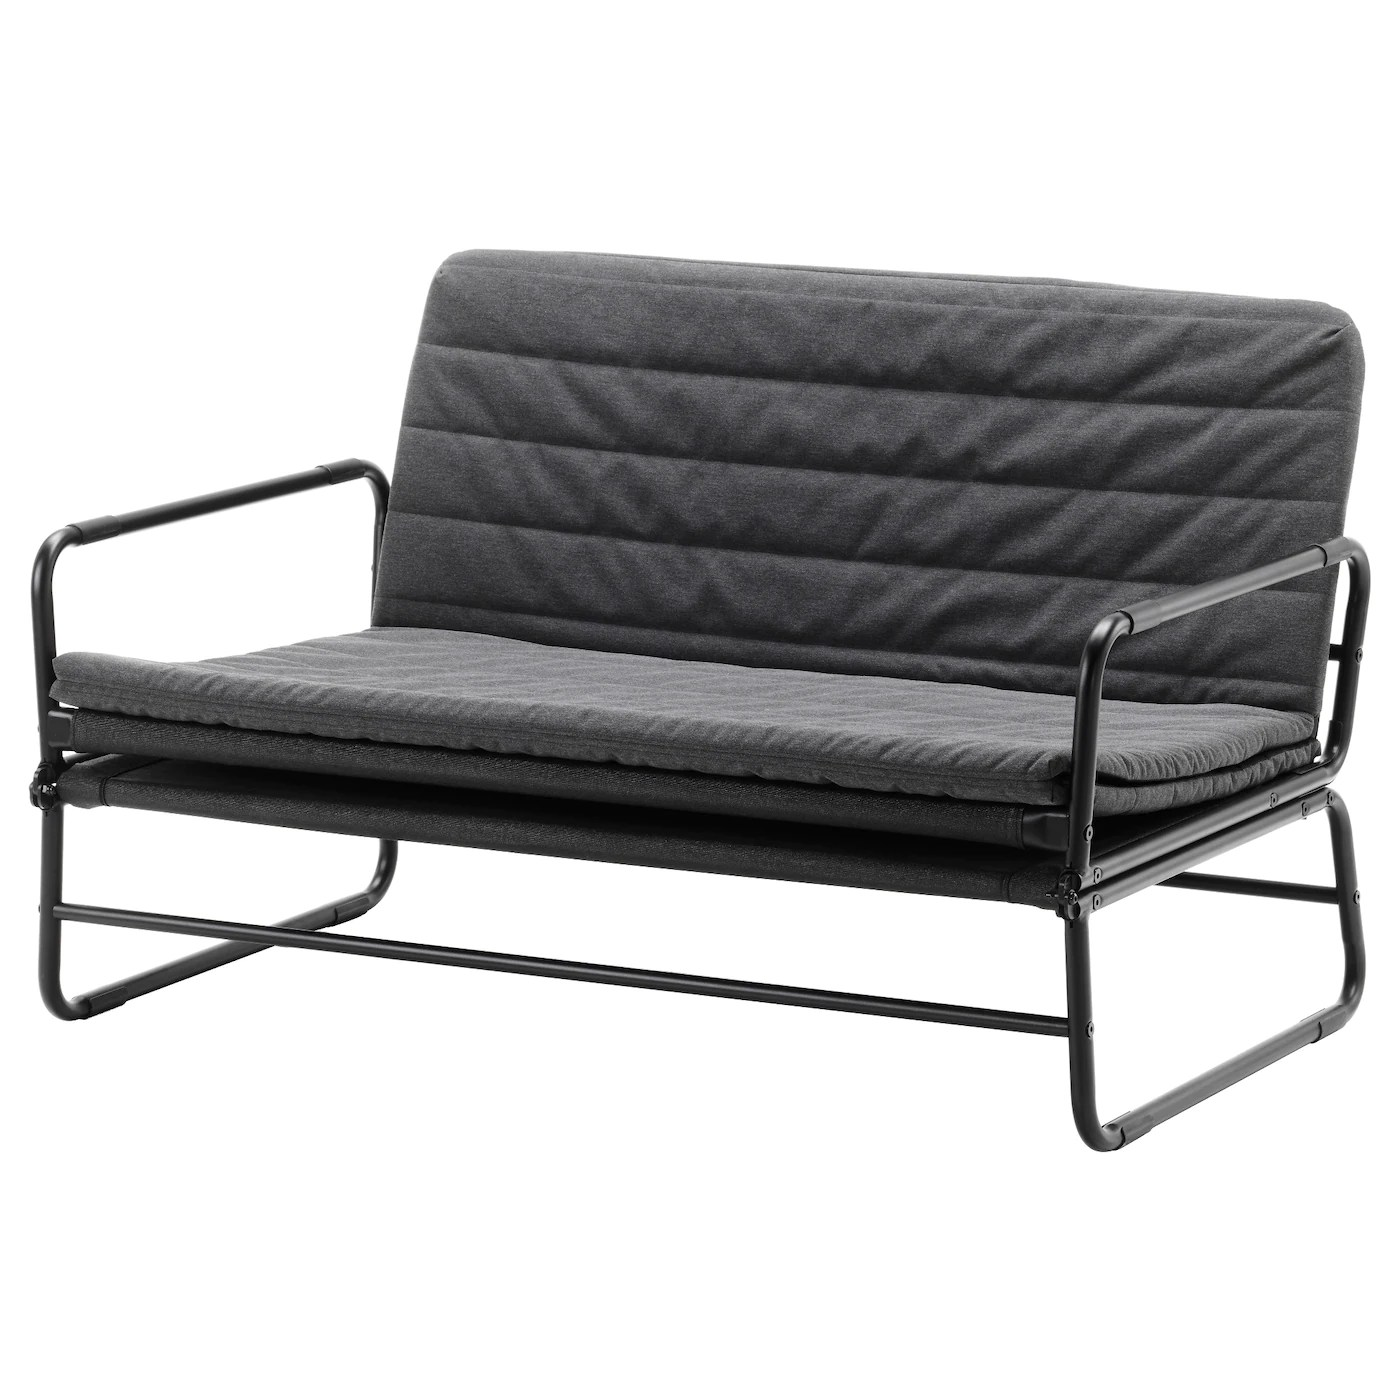 Ikea Bettbank Hammarn Sofa Bed Knisa Dark Grey Black 120 Cm Ikea